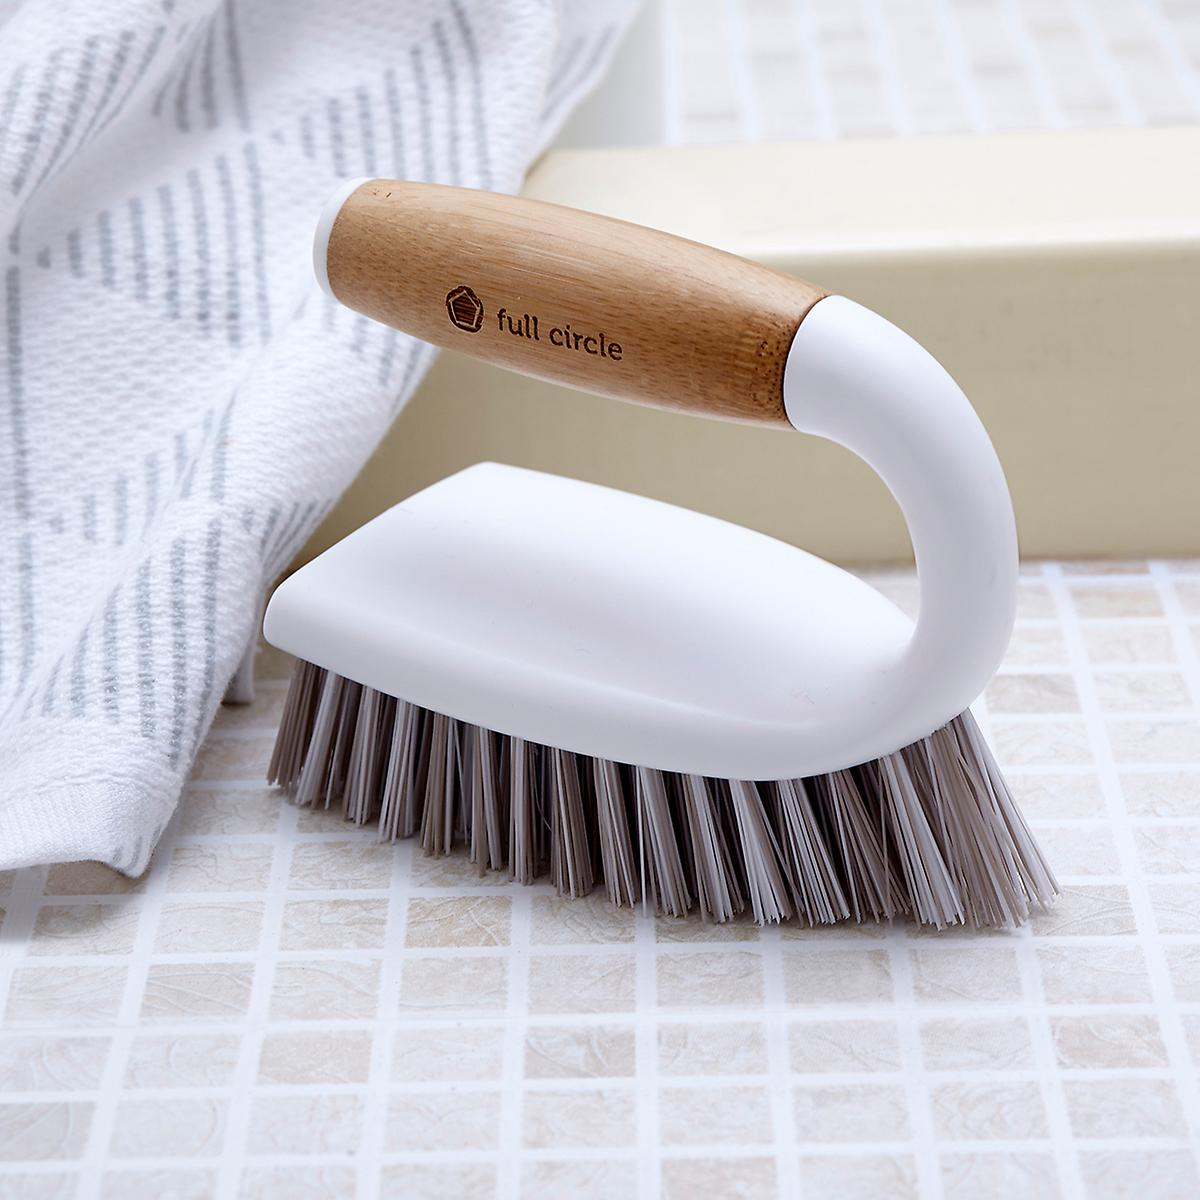 Full Circle Tough Stuff All-Purpose Scrub Brush